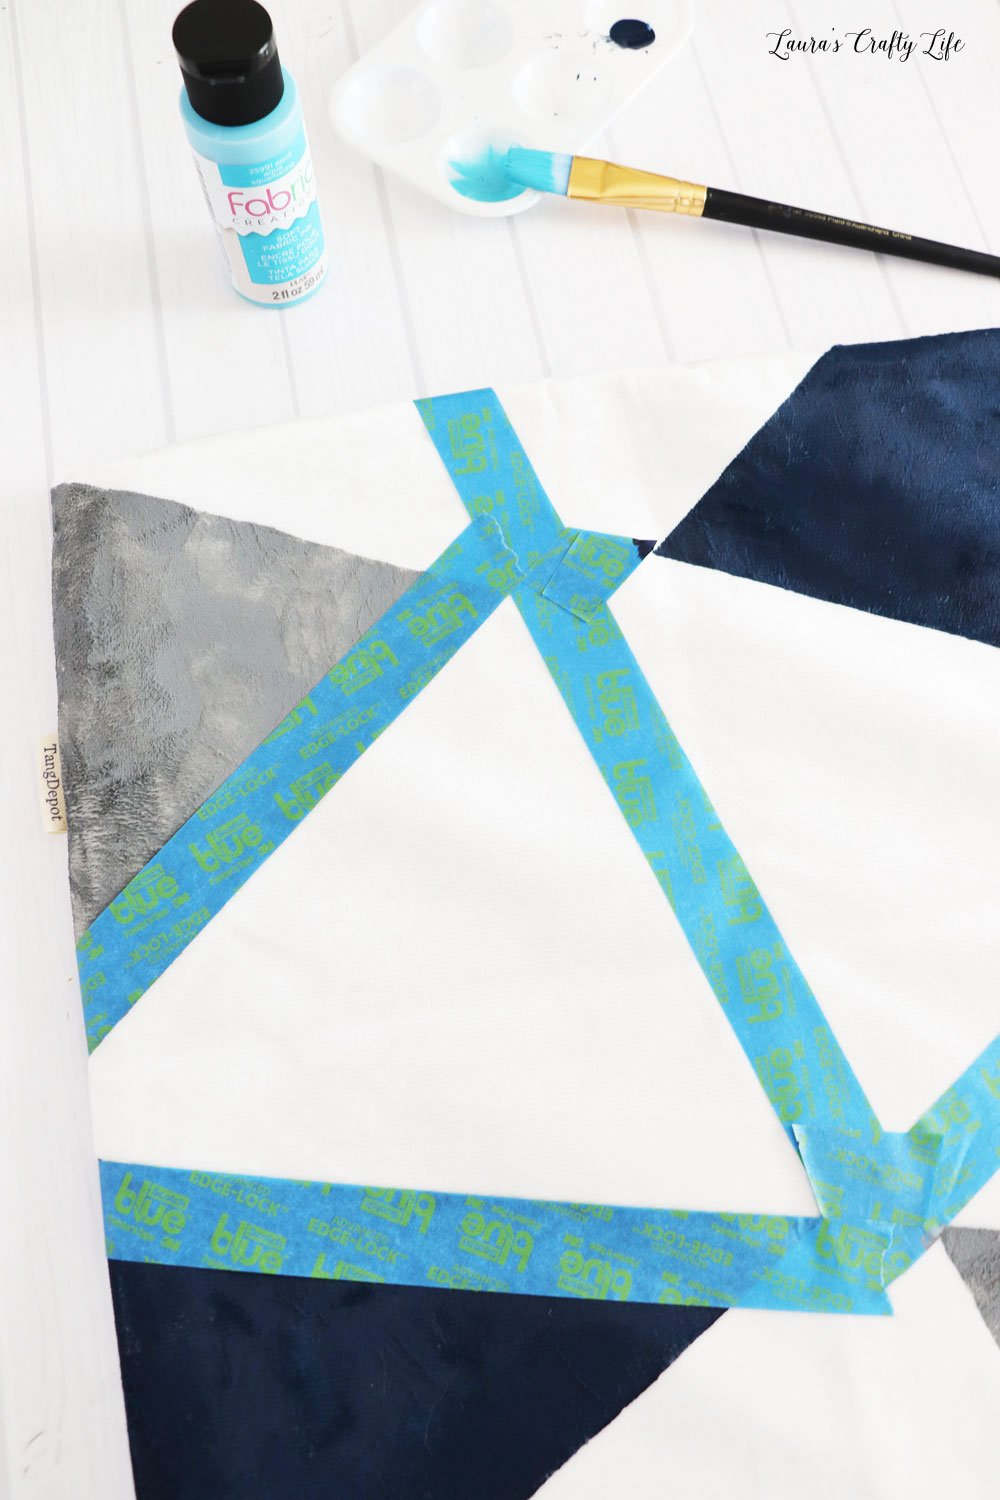 Continue taping and painting color block pillow